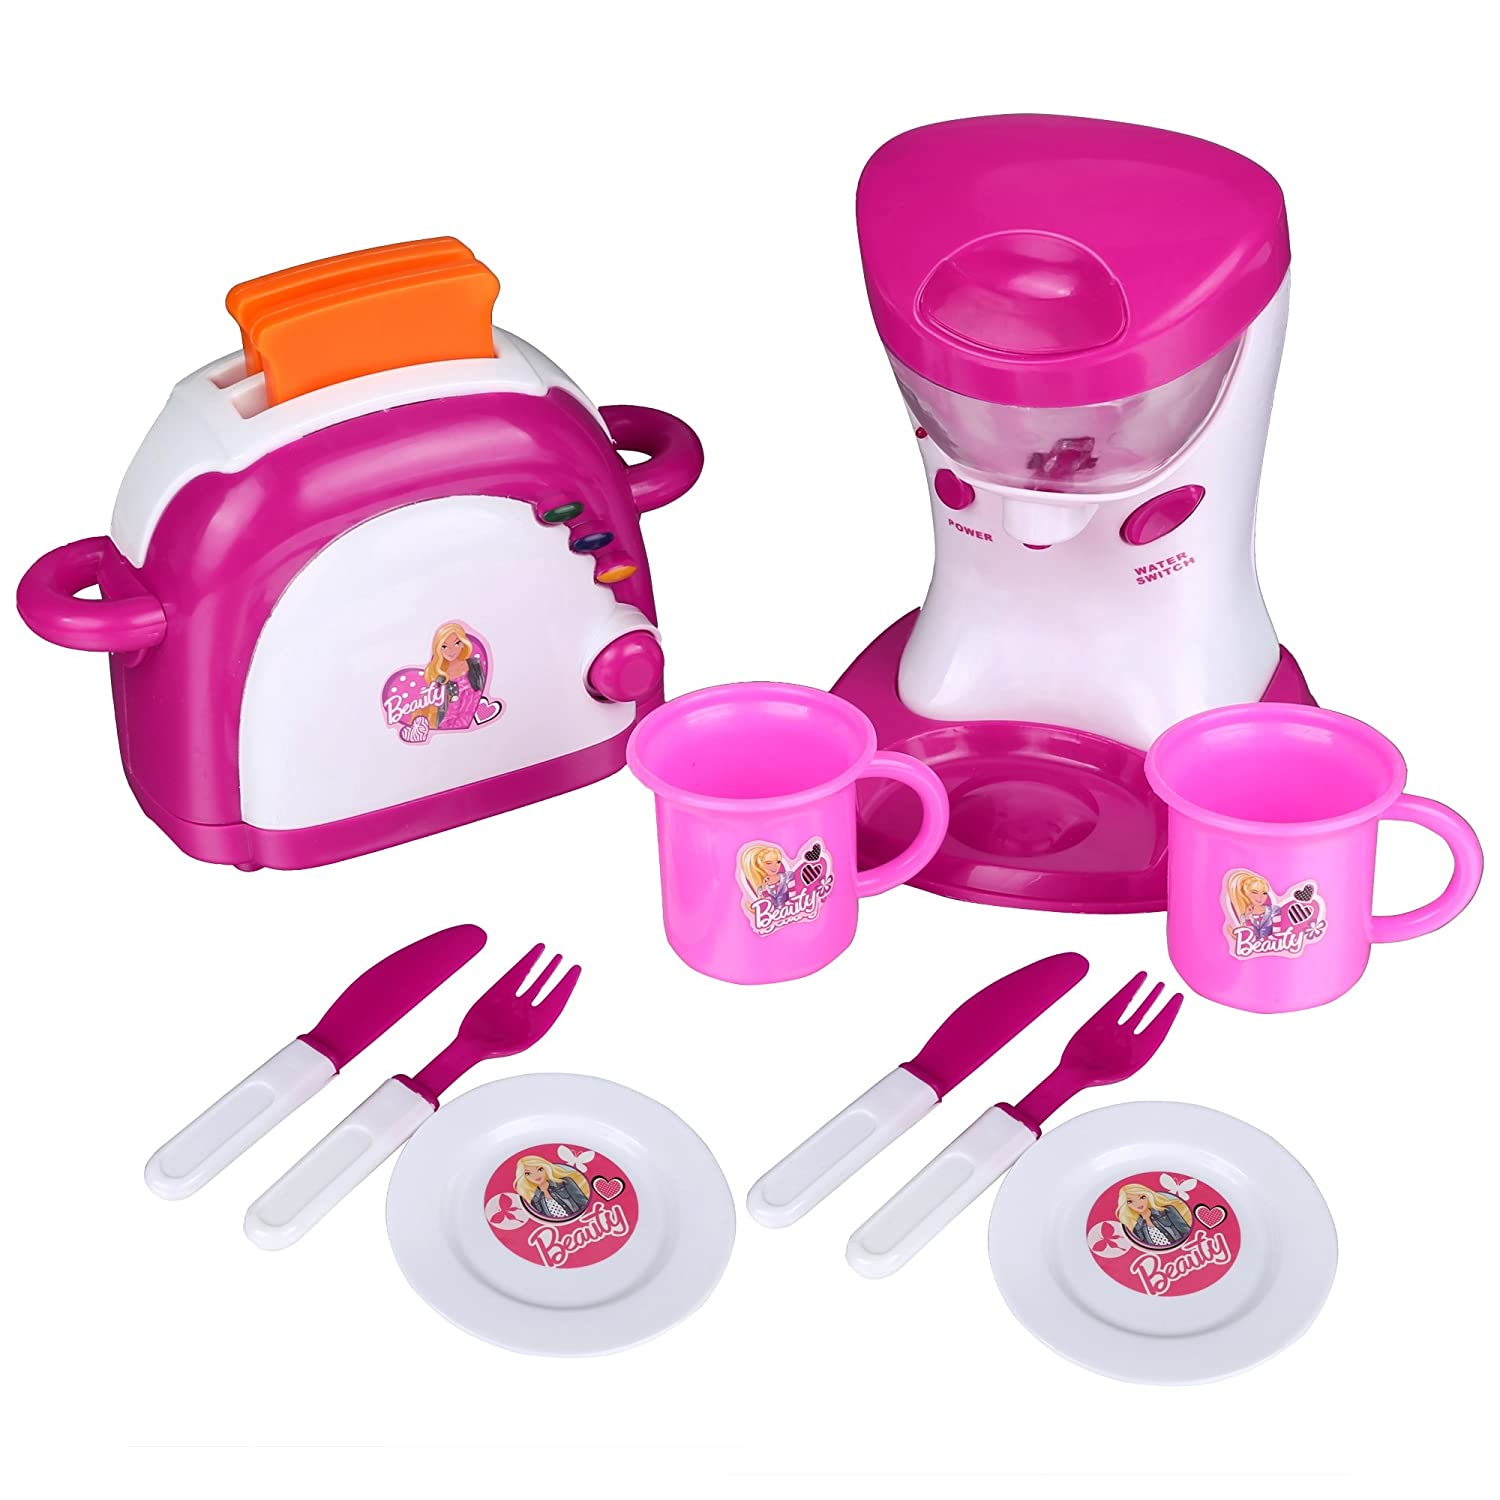 12 PCS Pretend Play Kitchen Electric Cooking Tool Set with Light & Sound for Kids, Including Mixer Appliance and Pop UP Bread Toaster with Cups, Forks, Cutters & Dishes, Educating Children to Learning Baking Basic Cooshional